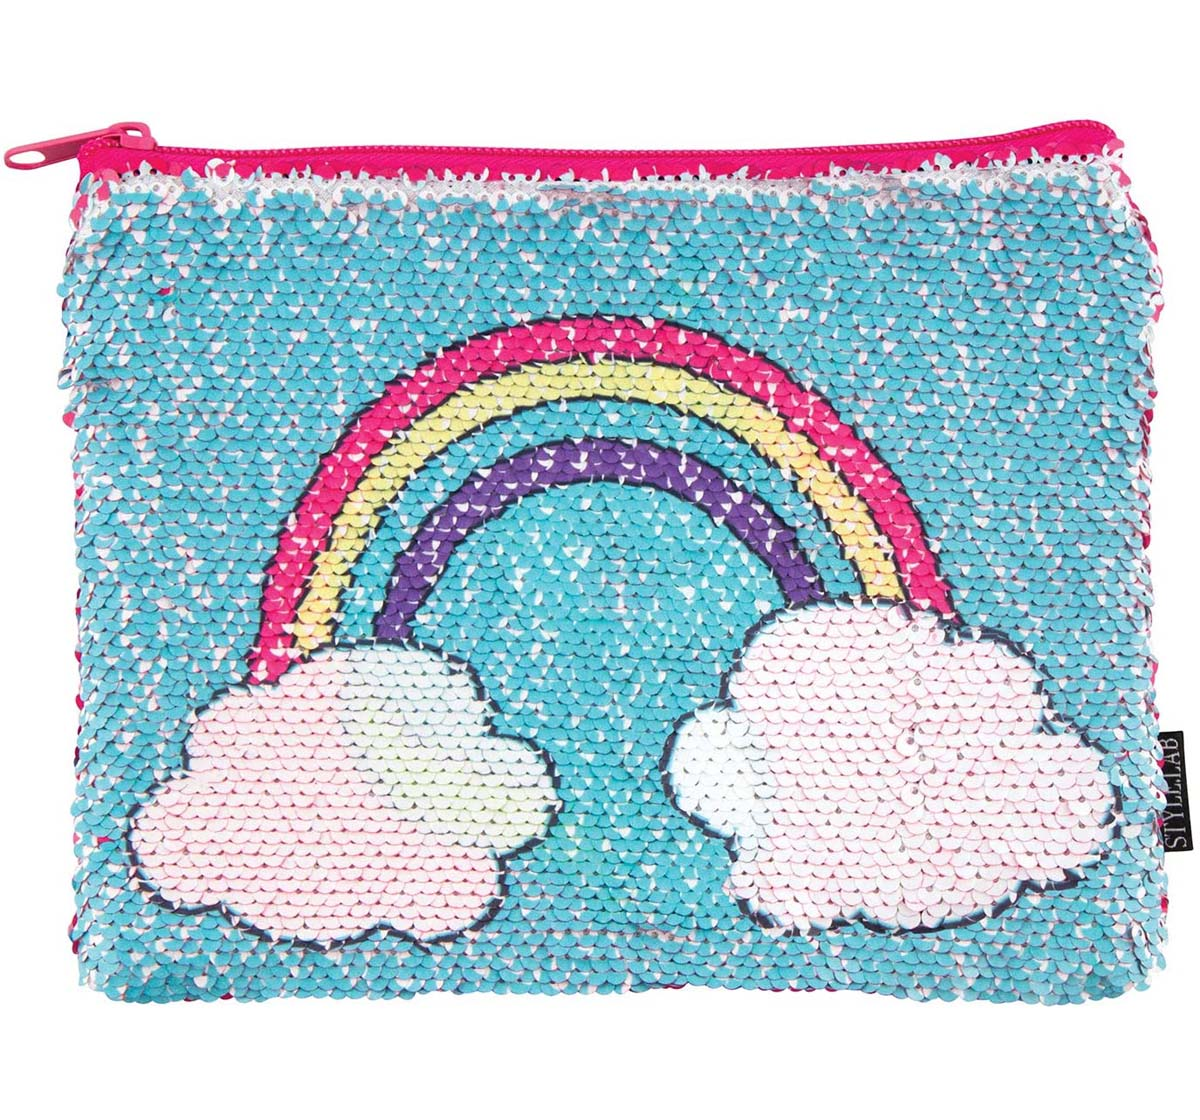 Fashion Angels | Fashion Angels Sequin Unicorn/Rainbow Pencil Pouch & Boxes for Girls age 6Y+